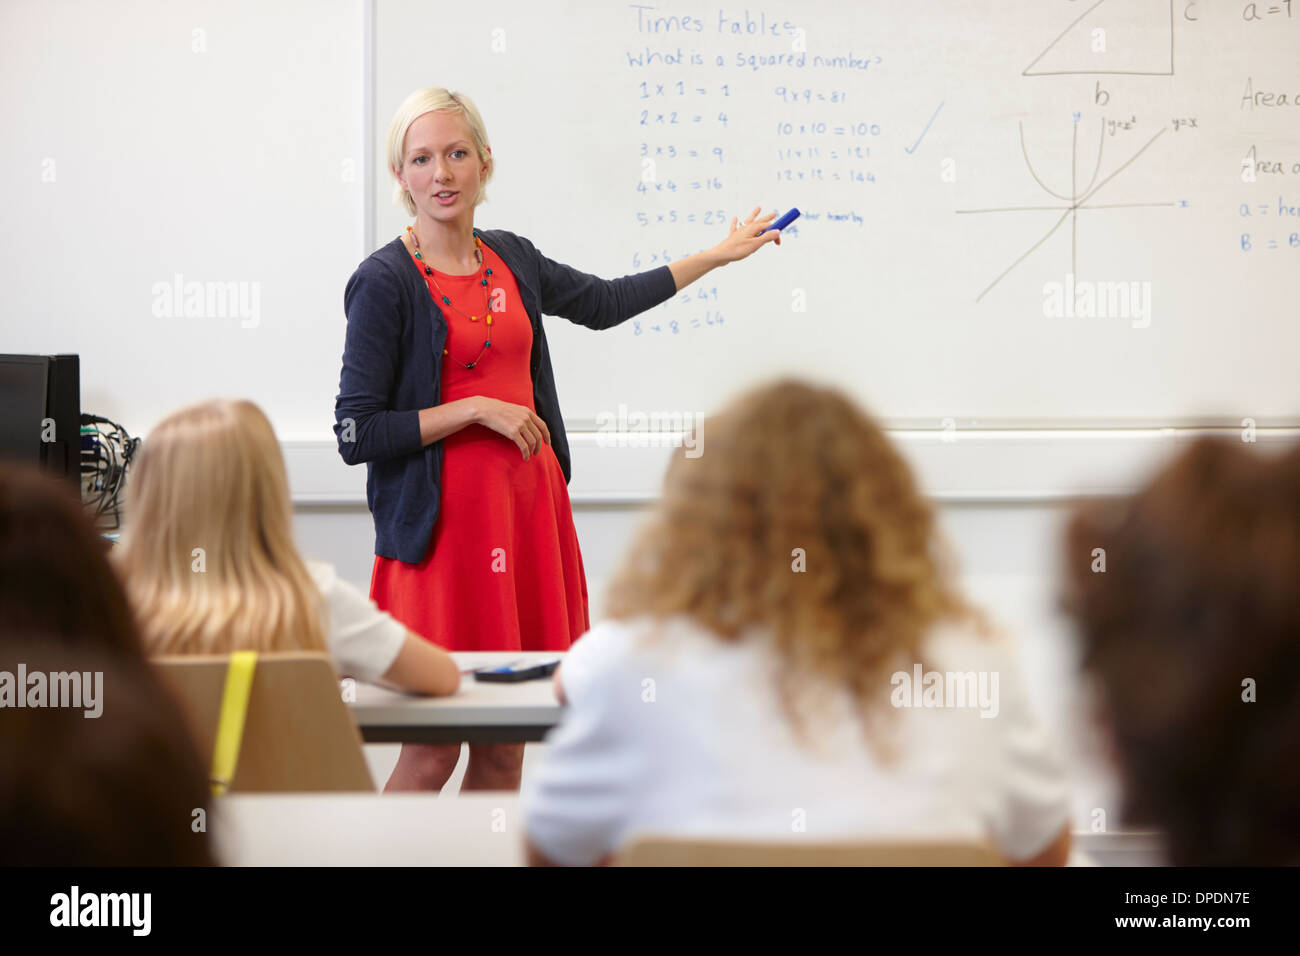 Female teacher using white board in front of class - Stock Image